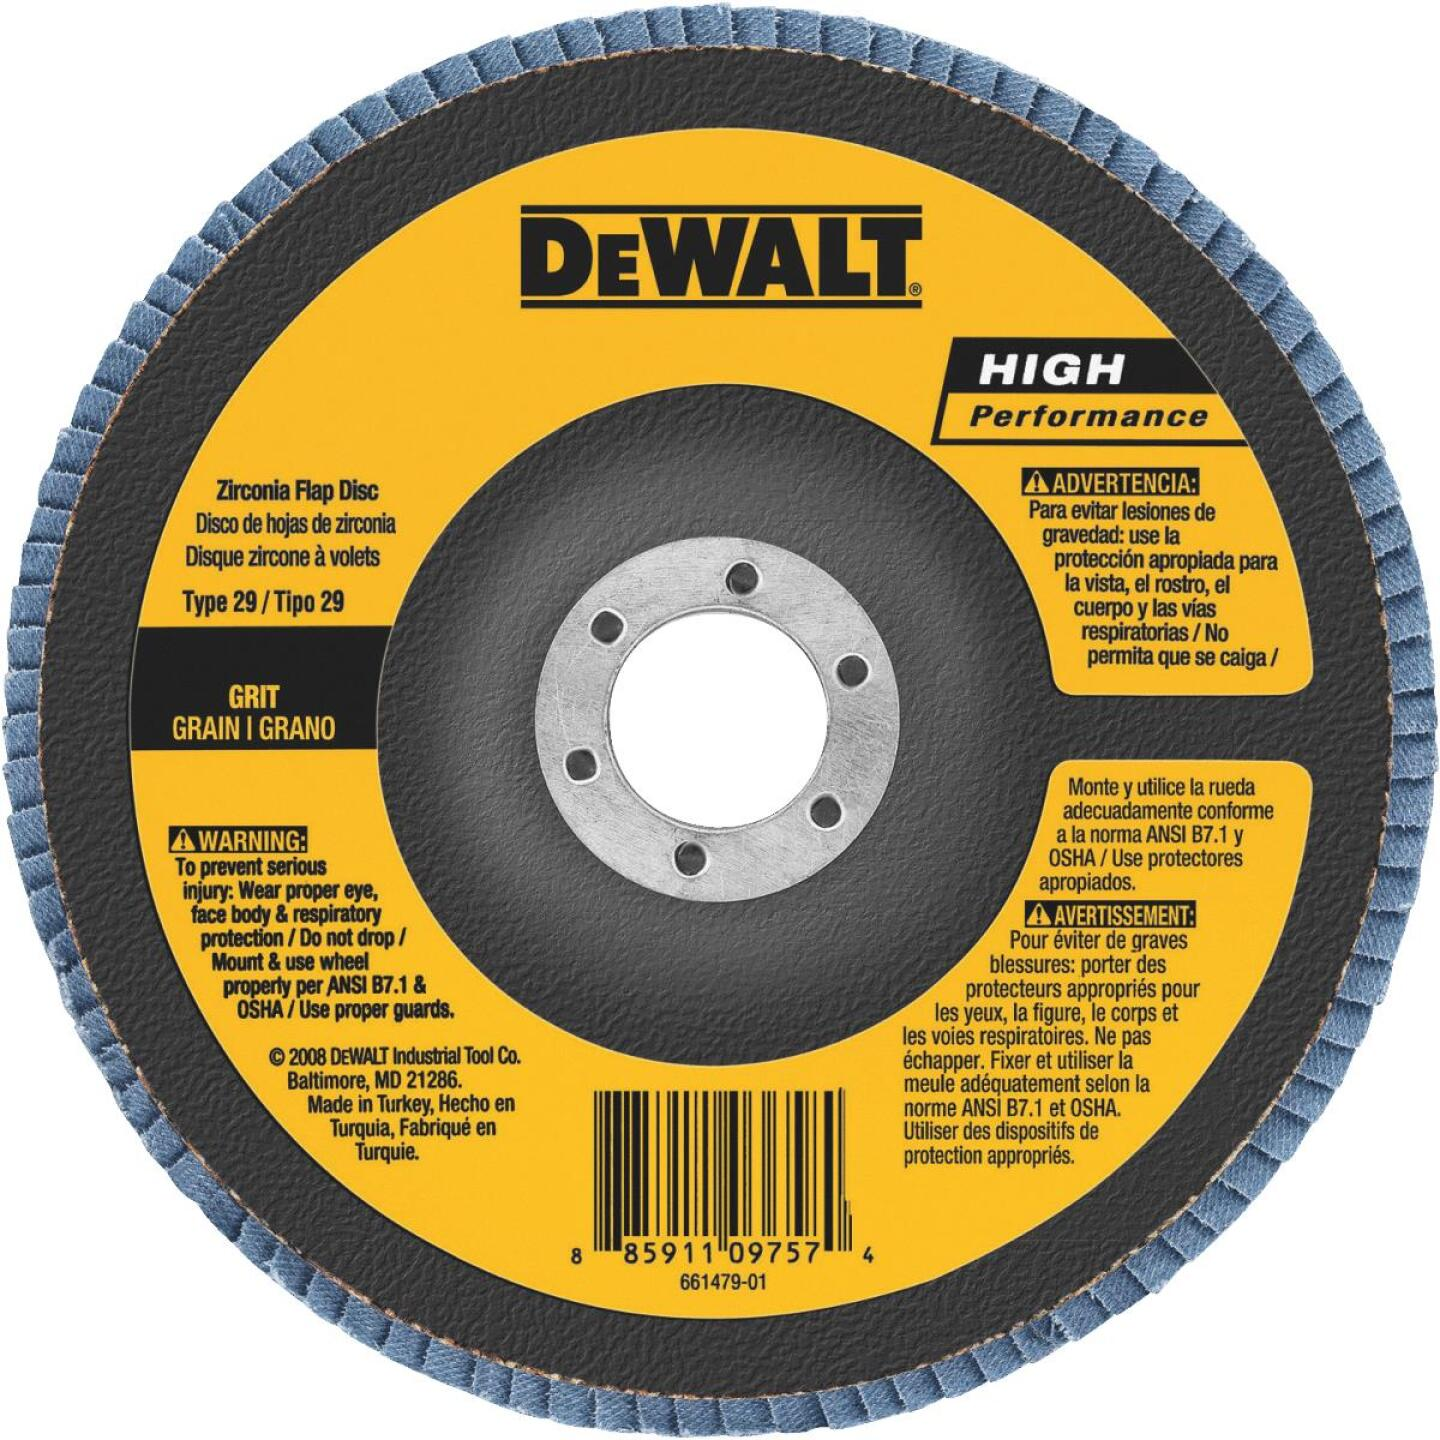 DeWalt 6 In. x 5/8 In.-11 60-Grit Type 29 High Performance Zirconia Angle Grinder Flap Disc Image 1